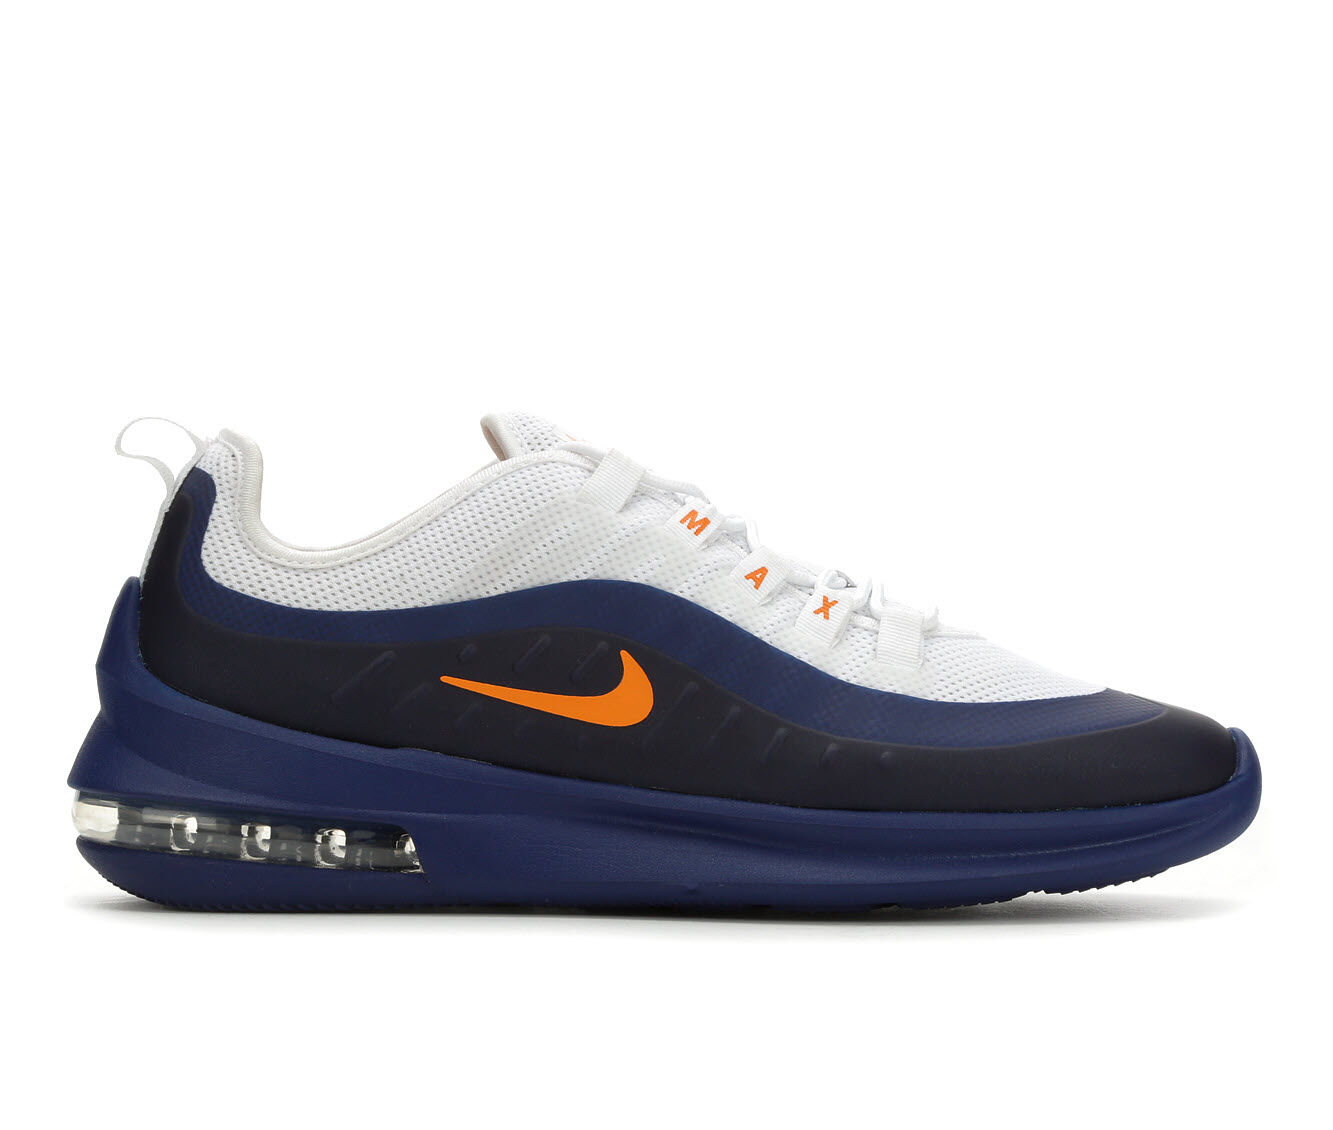 Men's Nike Air Max Axis Running Shoes Wht/Nvy/Org 106